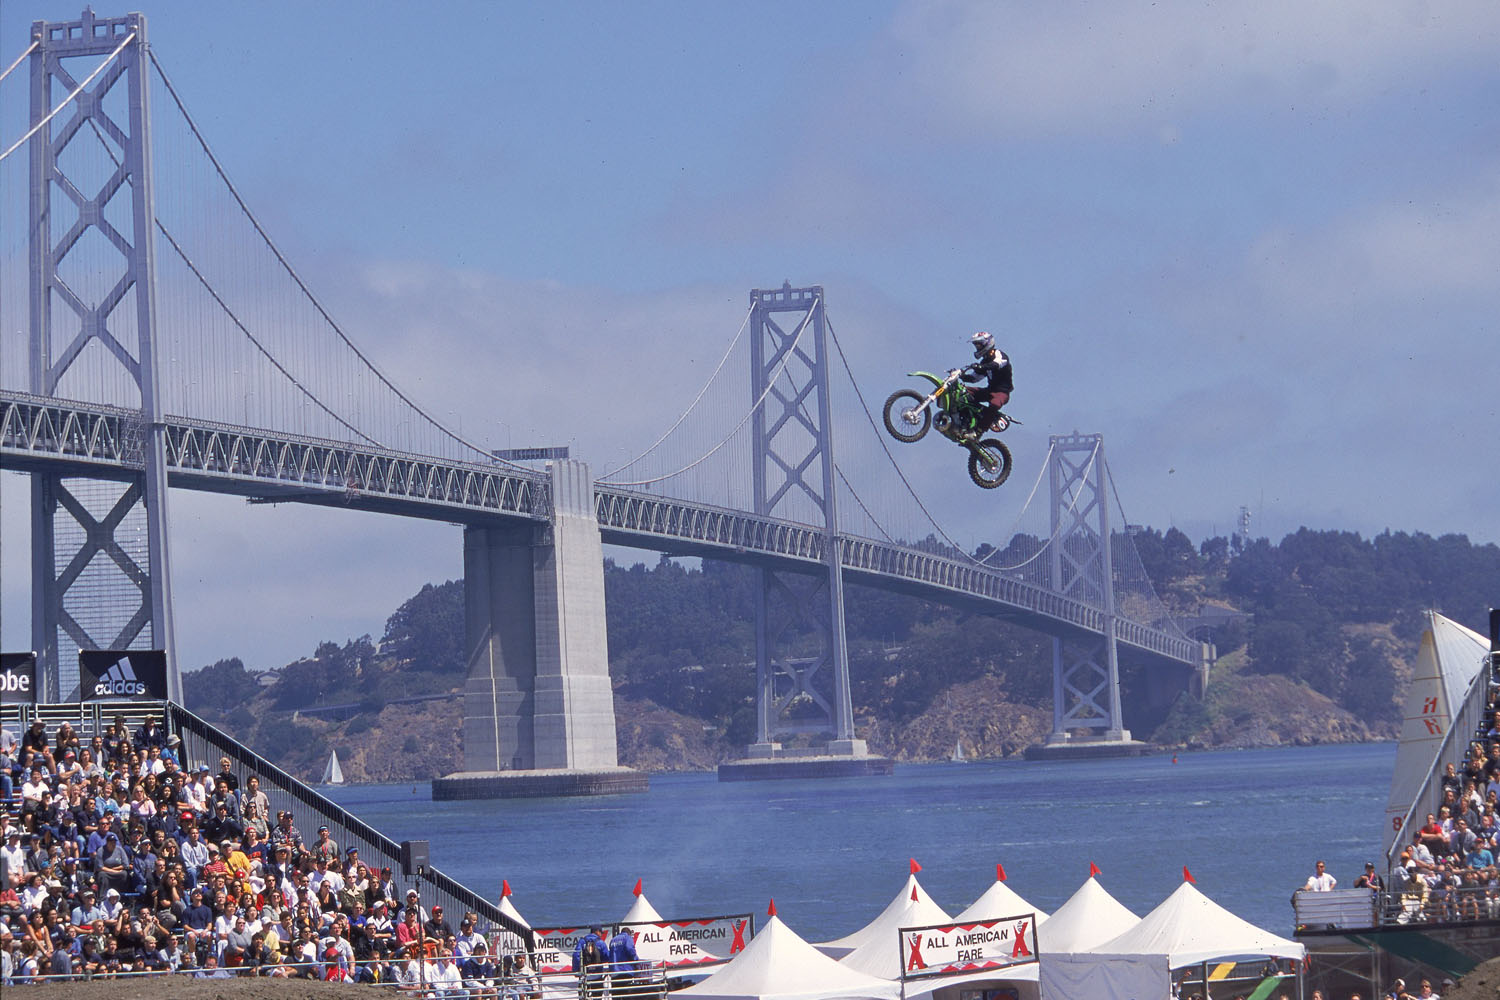 A beautiful view of the Moto X Freestyle competition during the X Games at Pier 30 and 32 in San Francisco, California.